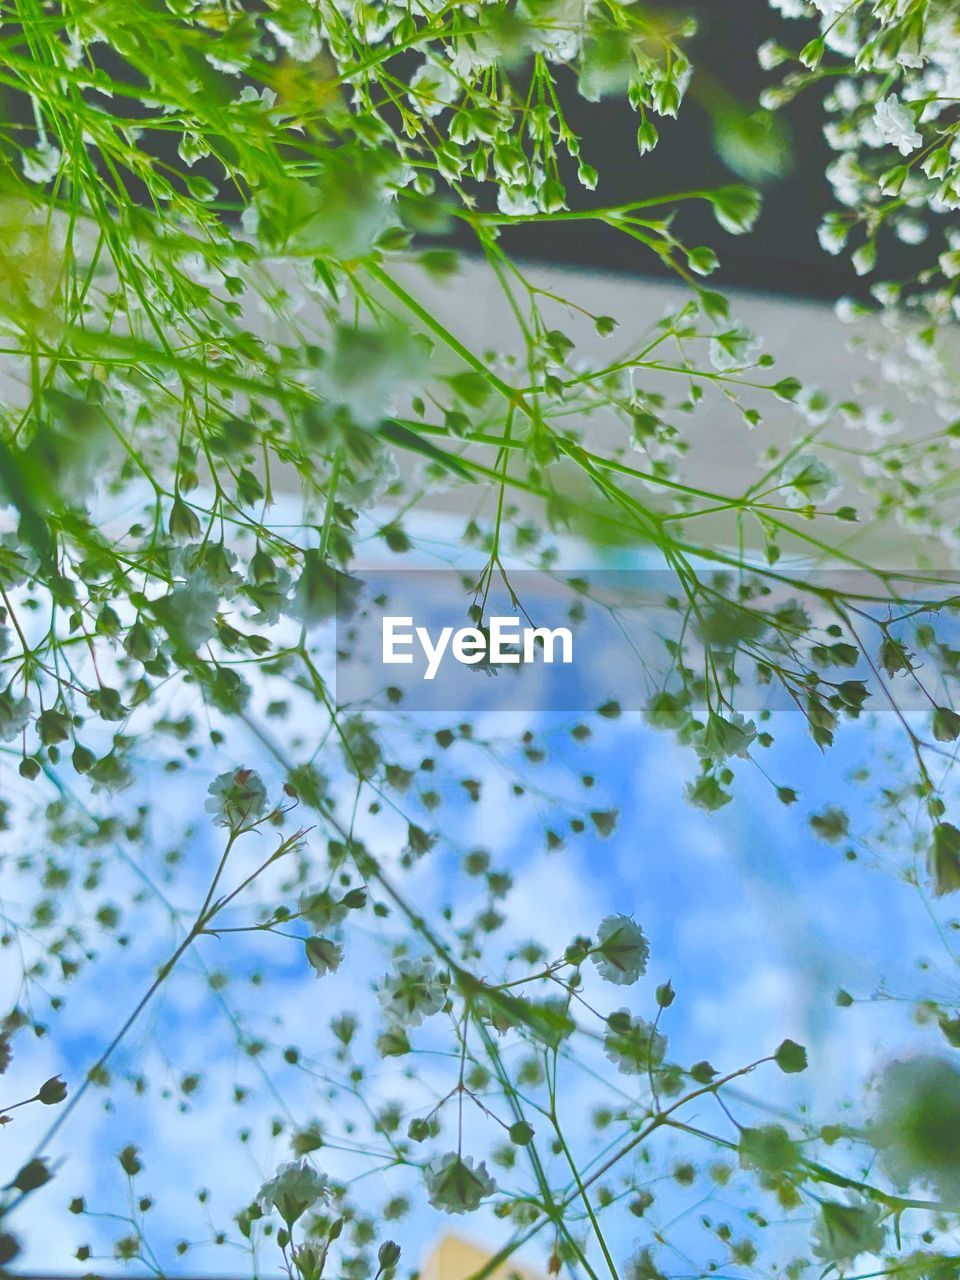 plant, growth, tree, beauty in nature, nature, no people, day, green color, low angle view, tranquility, branch, leaf, flower, plant part, freshness, selective focus, outdoors, flowering plant, close-up, sky